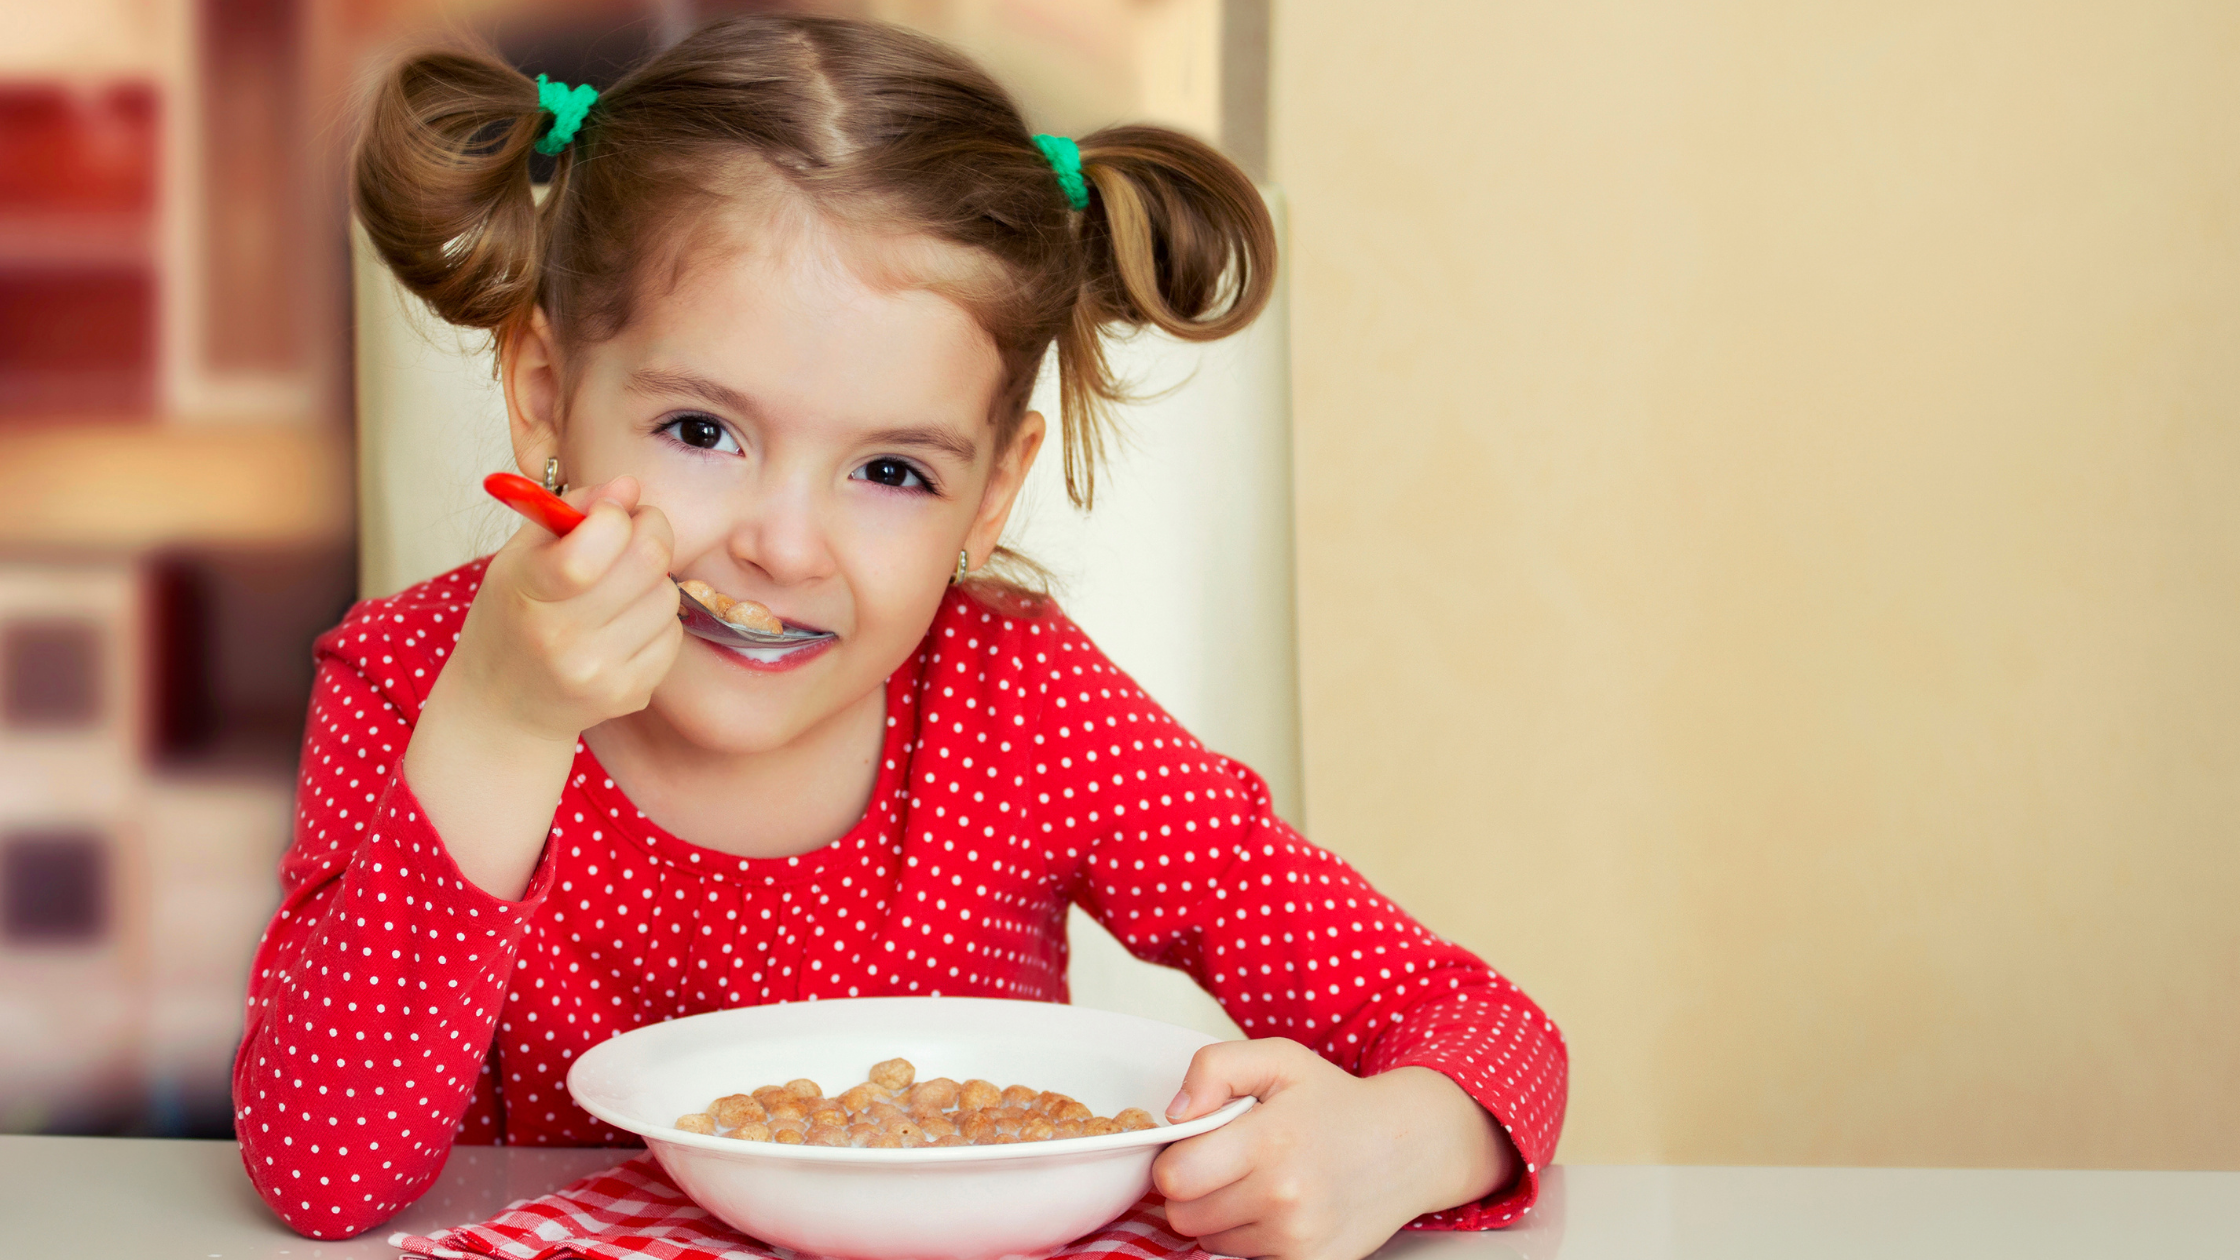 little girl with pigtails eating cereal